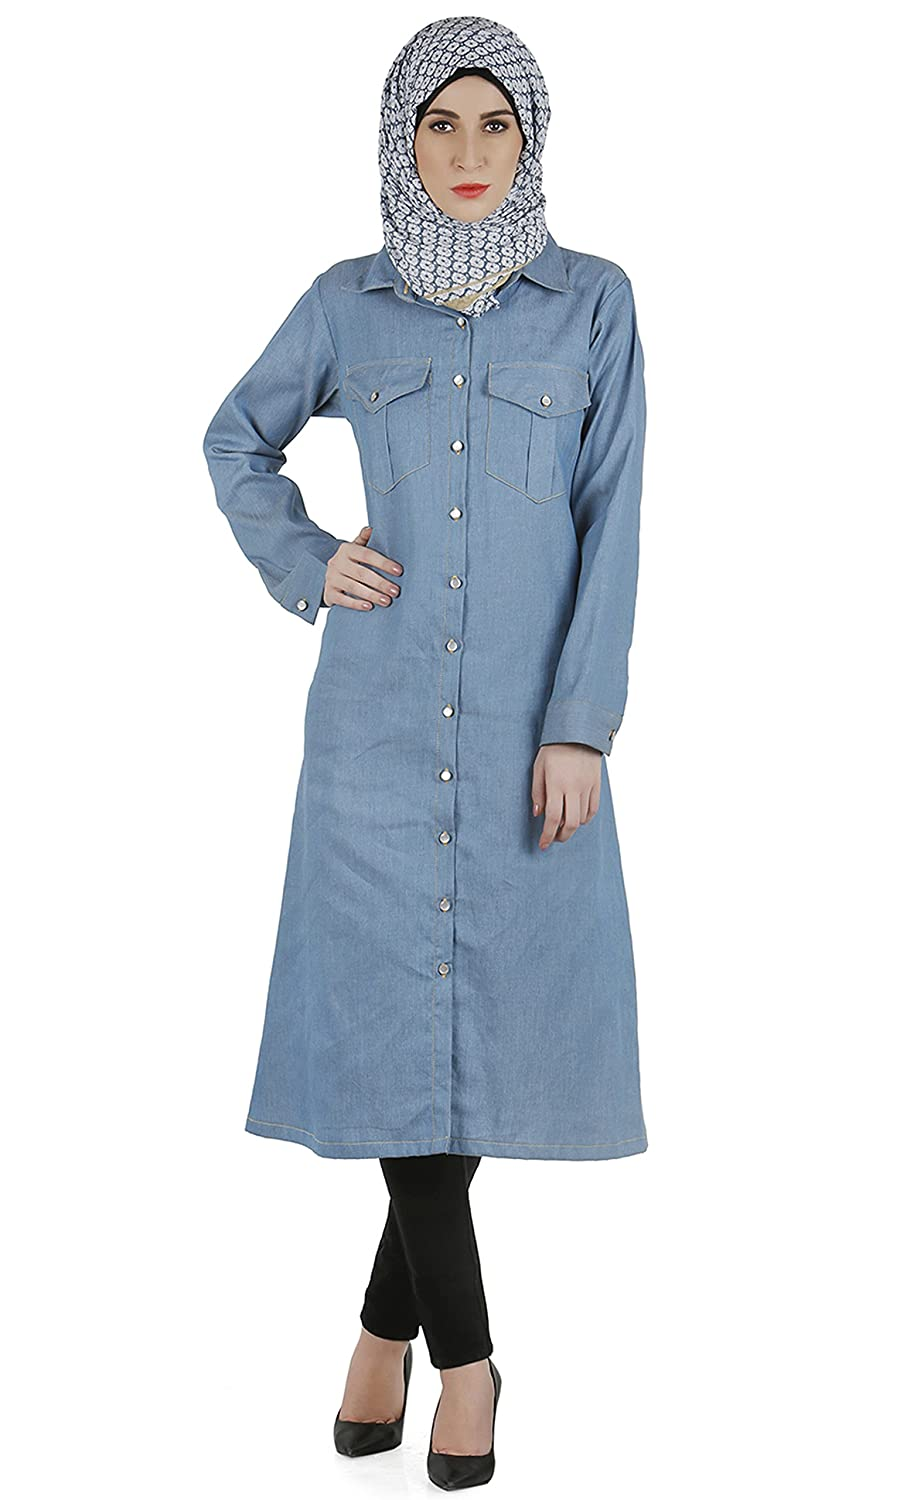 Modest Forever Long denim shirt dress modestforever